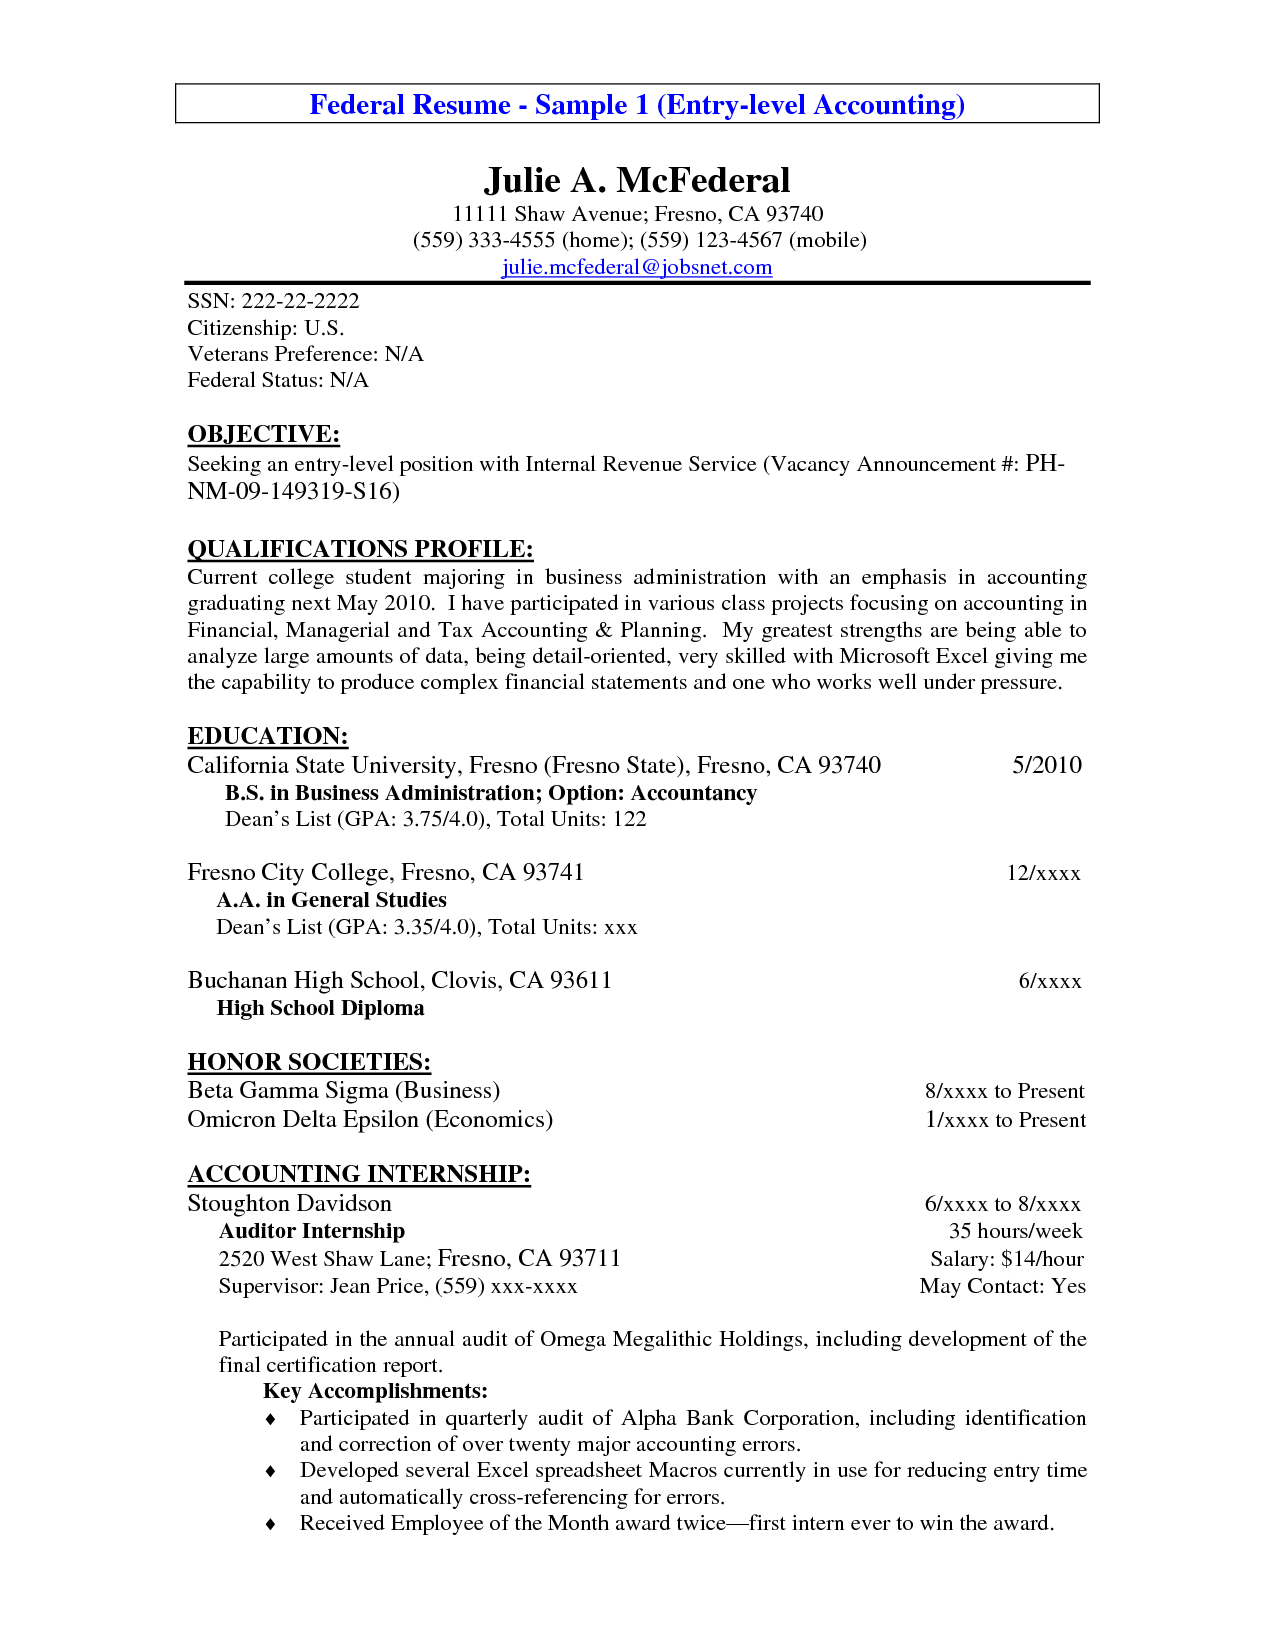 Accounting resume objectives read more httpwww accounting resume objectives read more httpsampleresumeobjectives altavistaventures Image collections